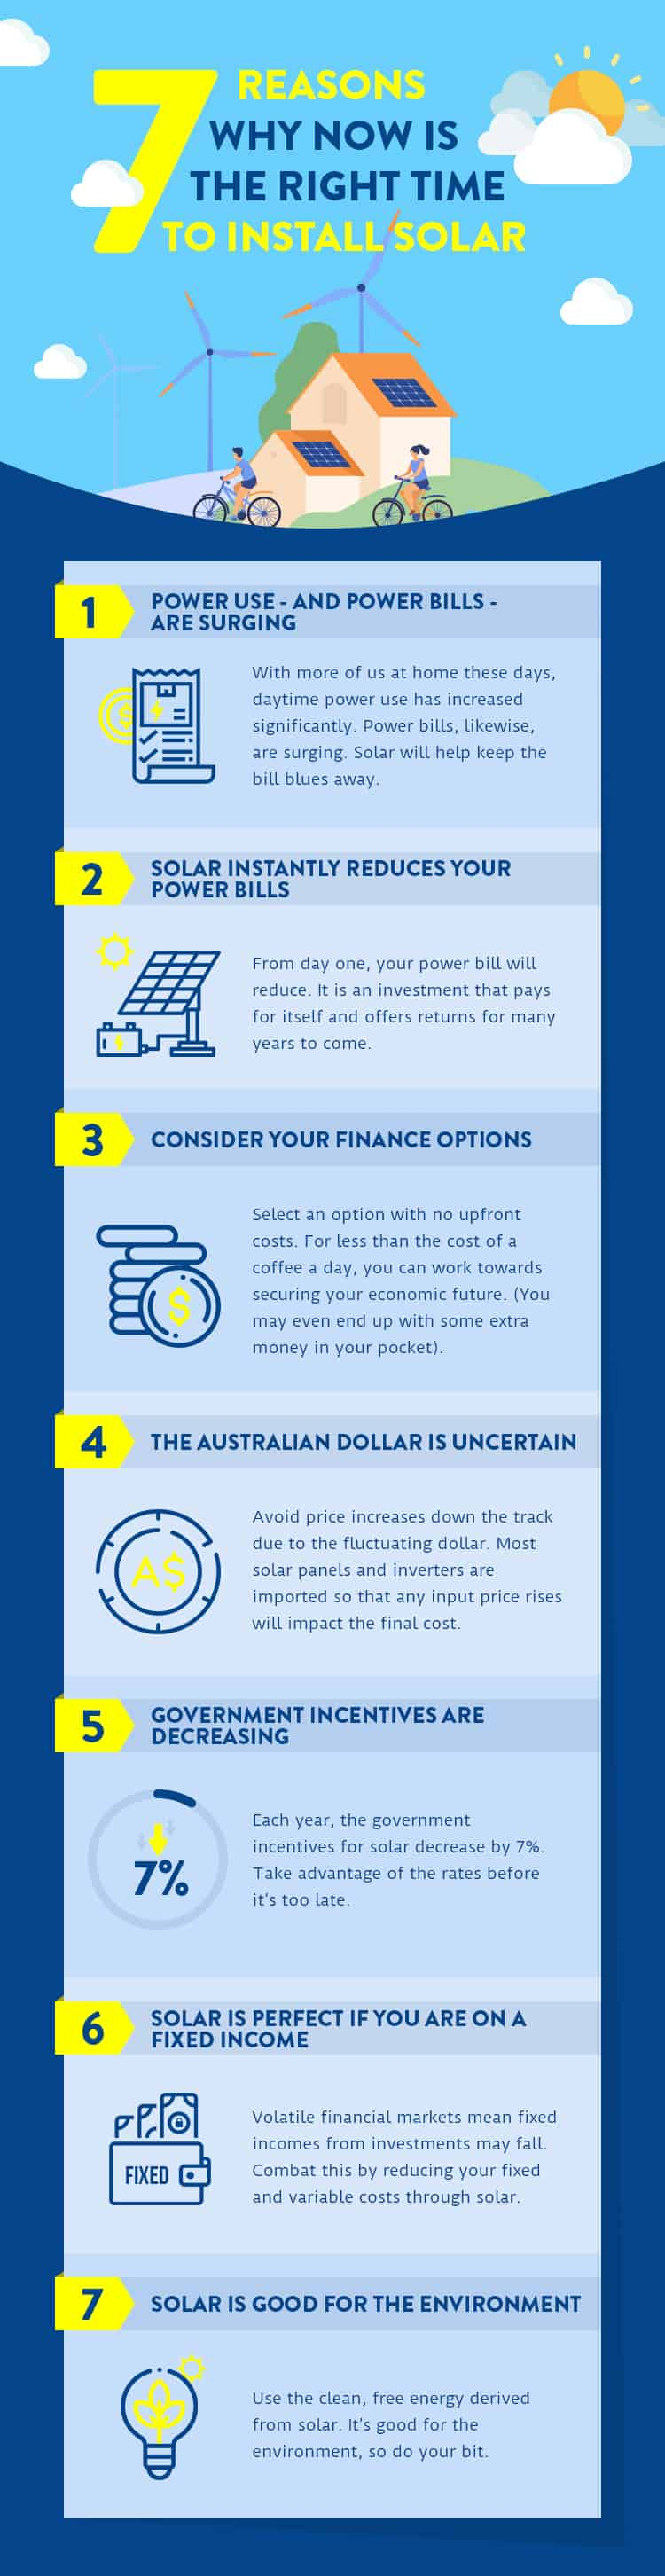 7 Reasons Why Now Is The Right Time To Install Solar